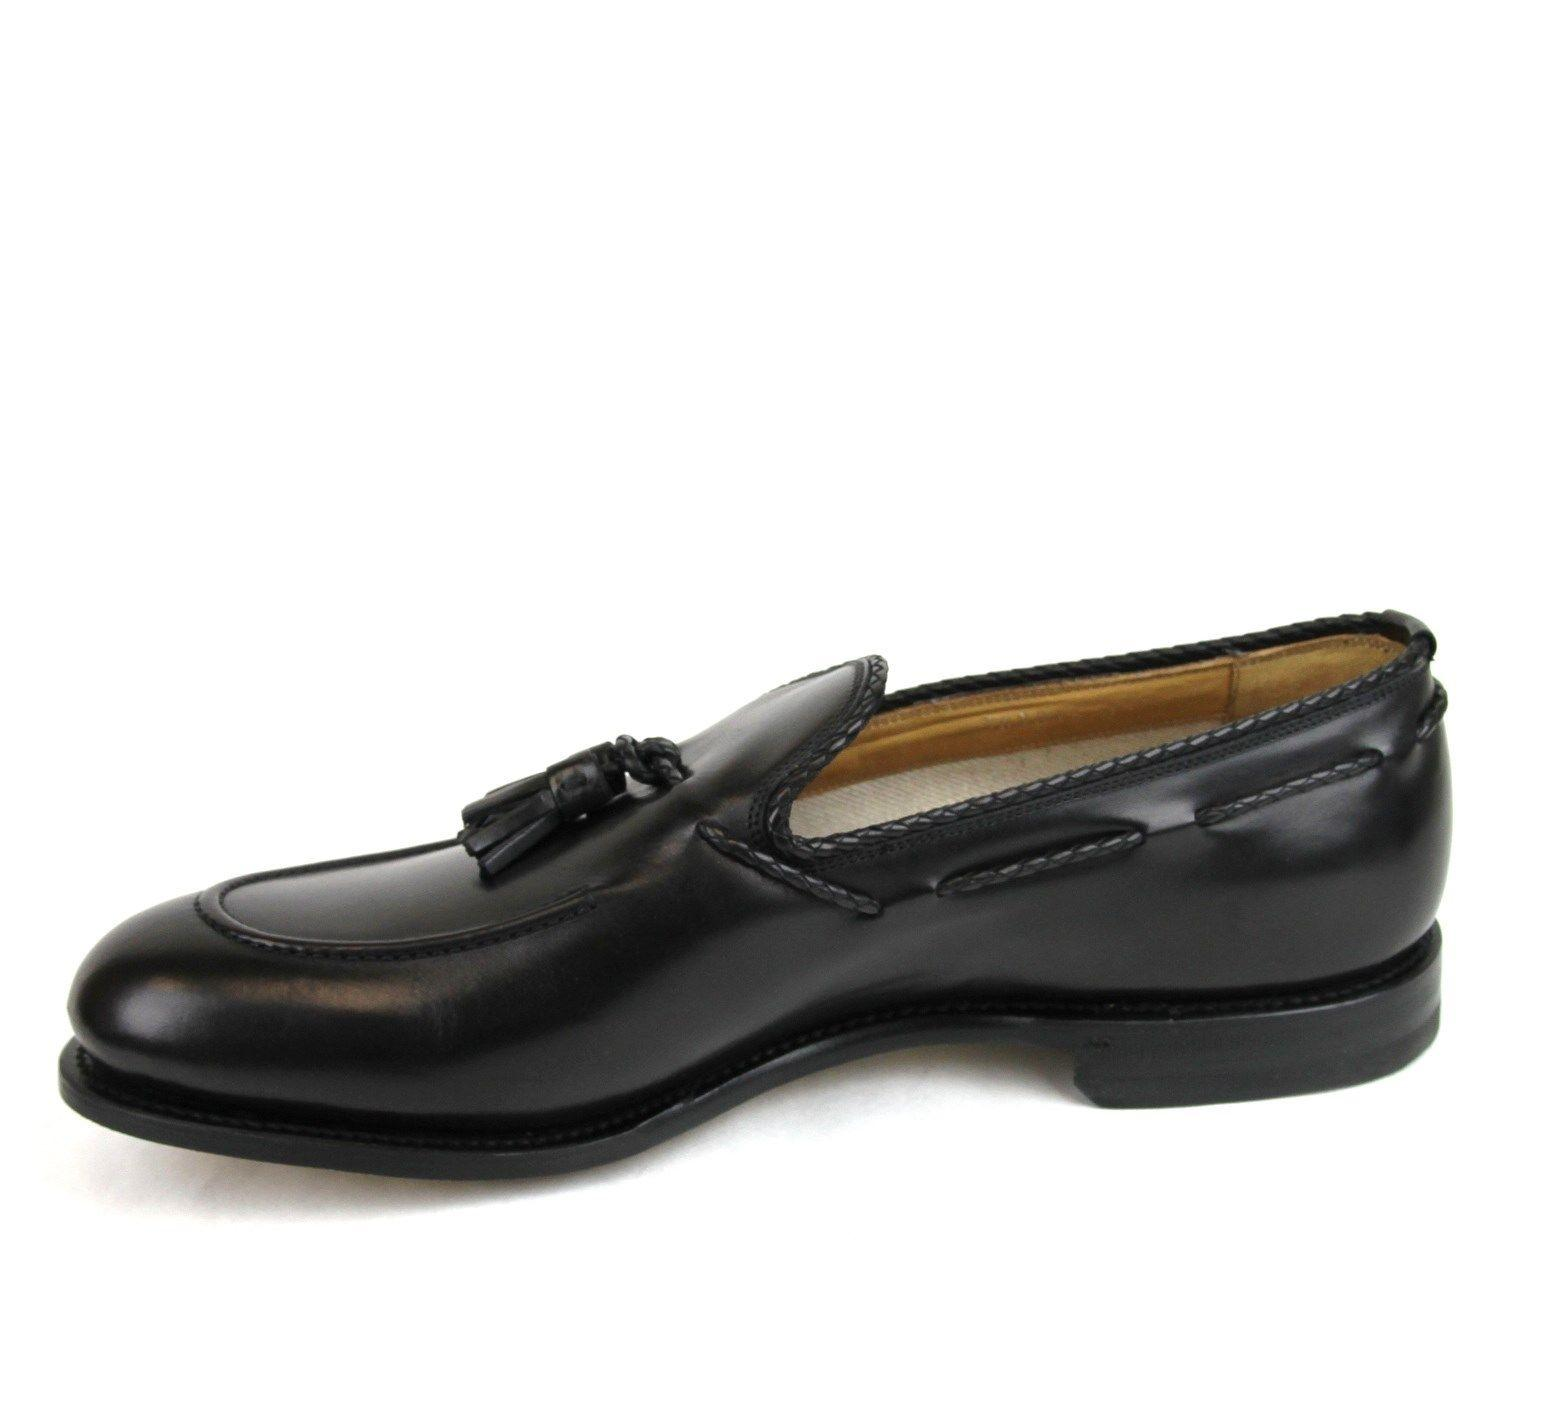 gucci dress shoes. gucci leather dress shoes loafer w/tassel 11.5/ us 12.5 309016 1000